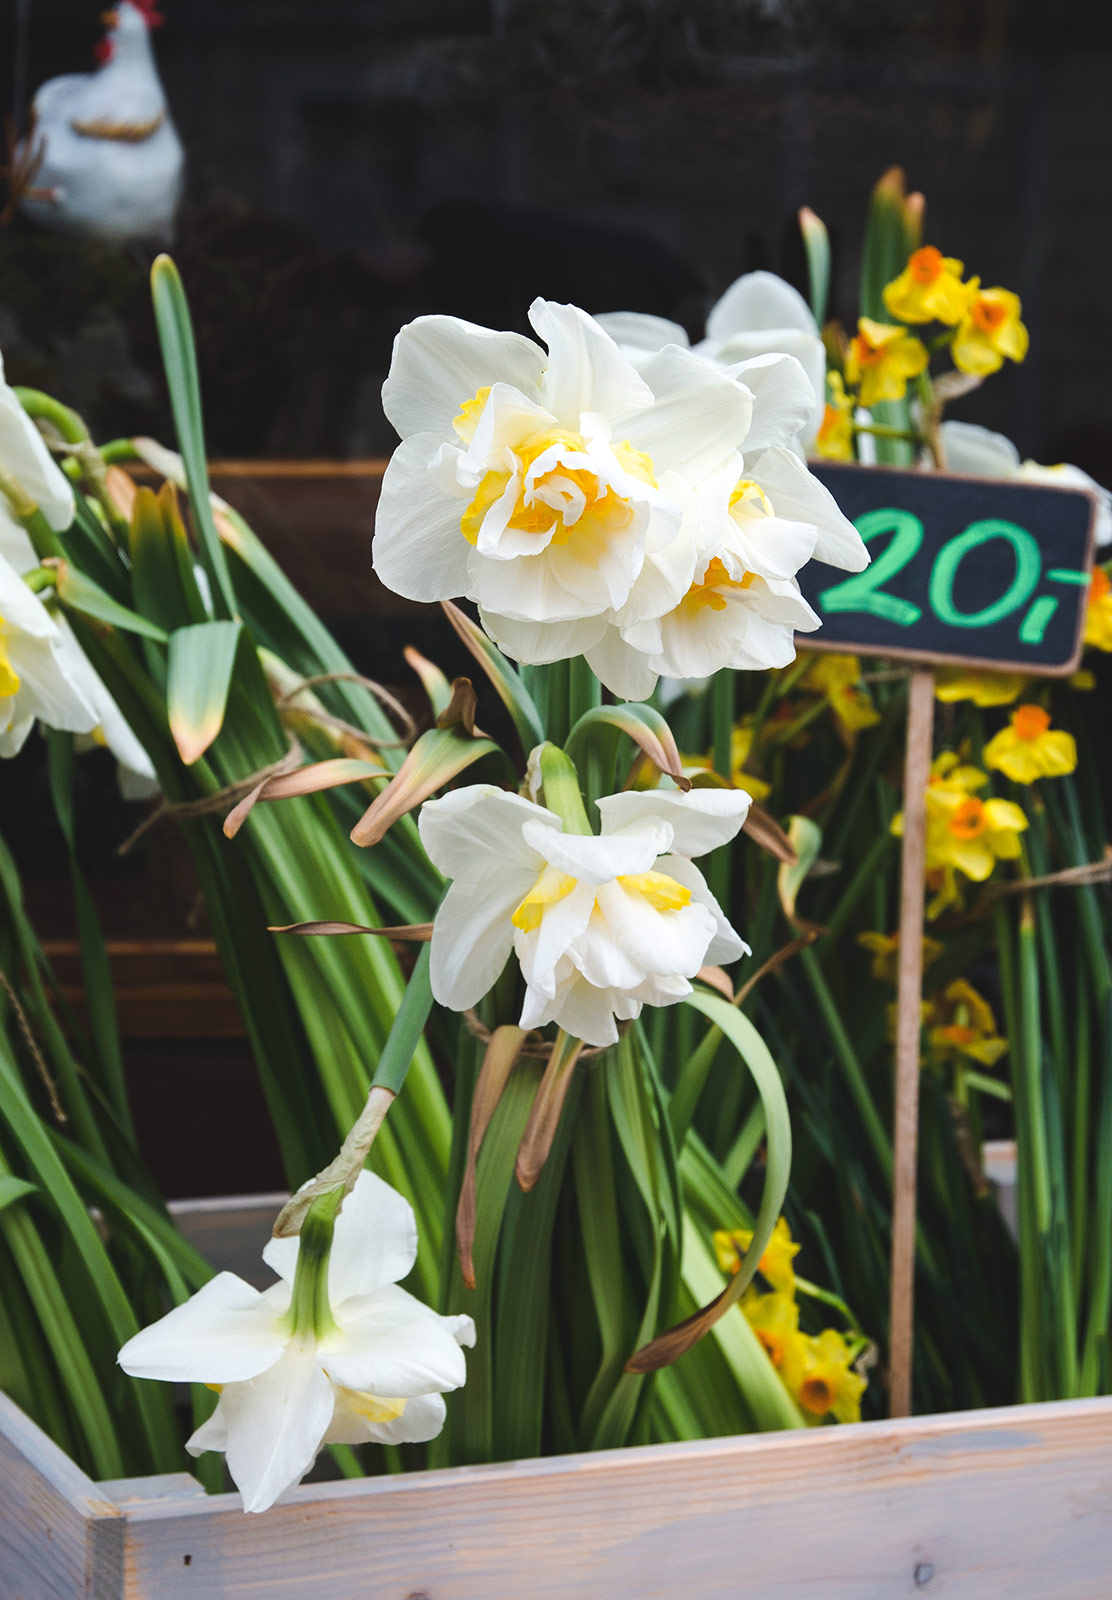 Bunched daffodils